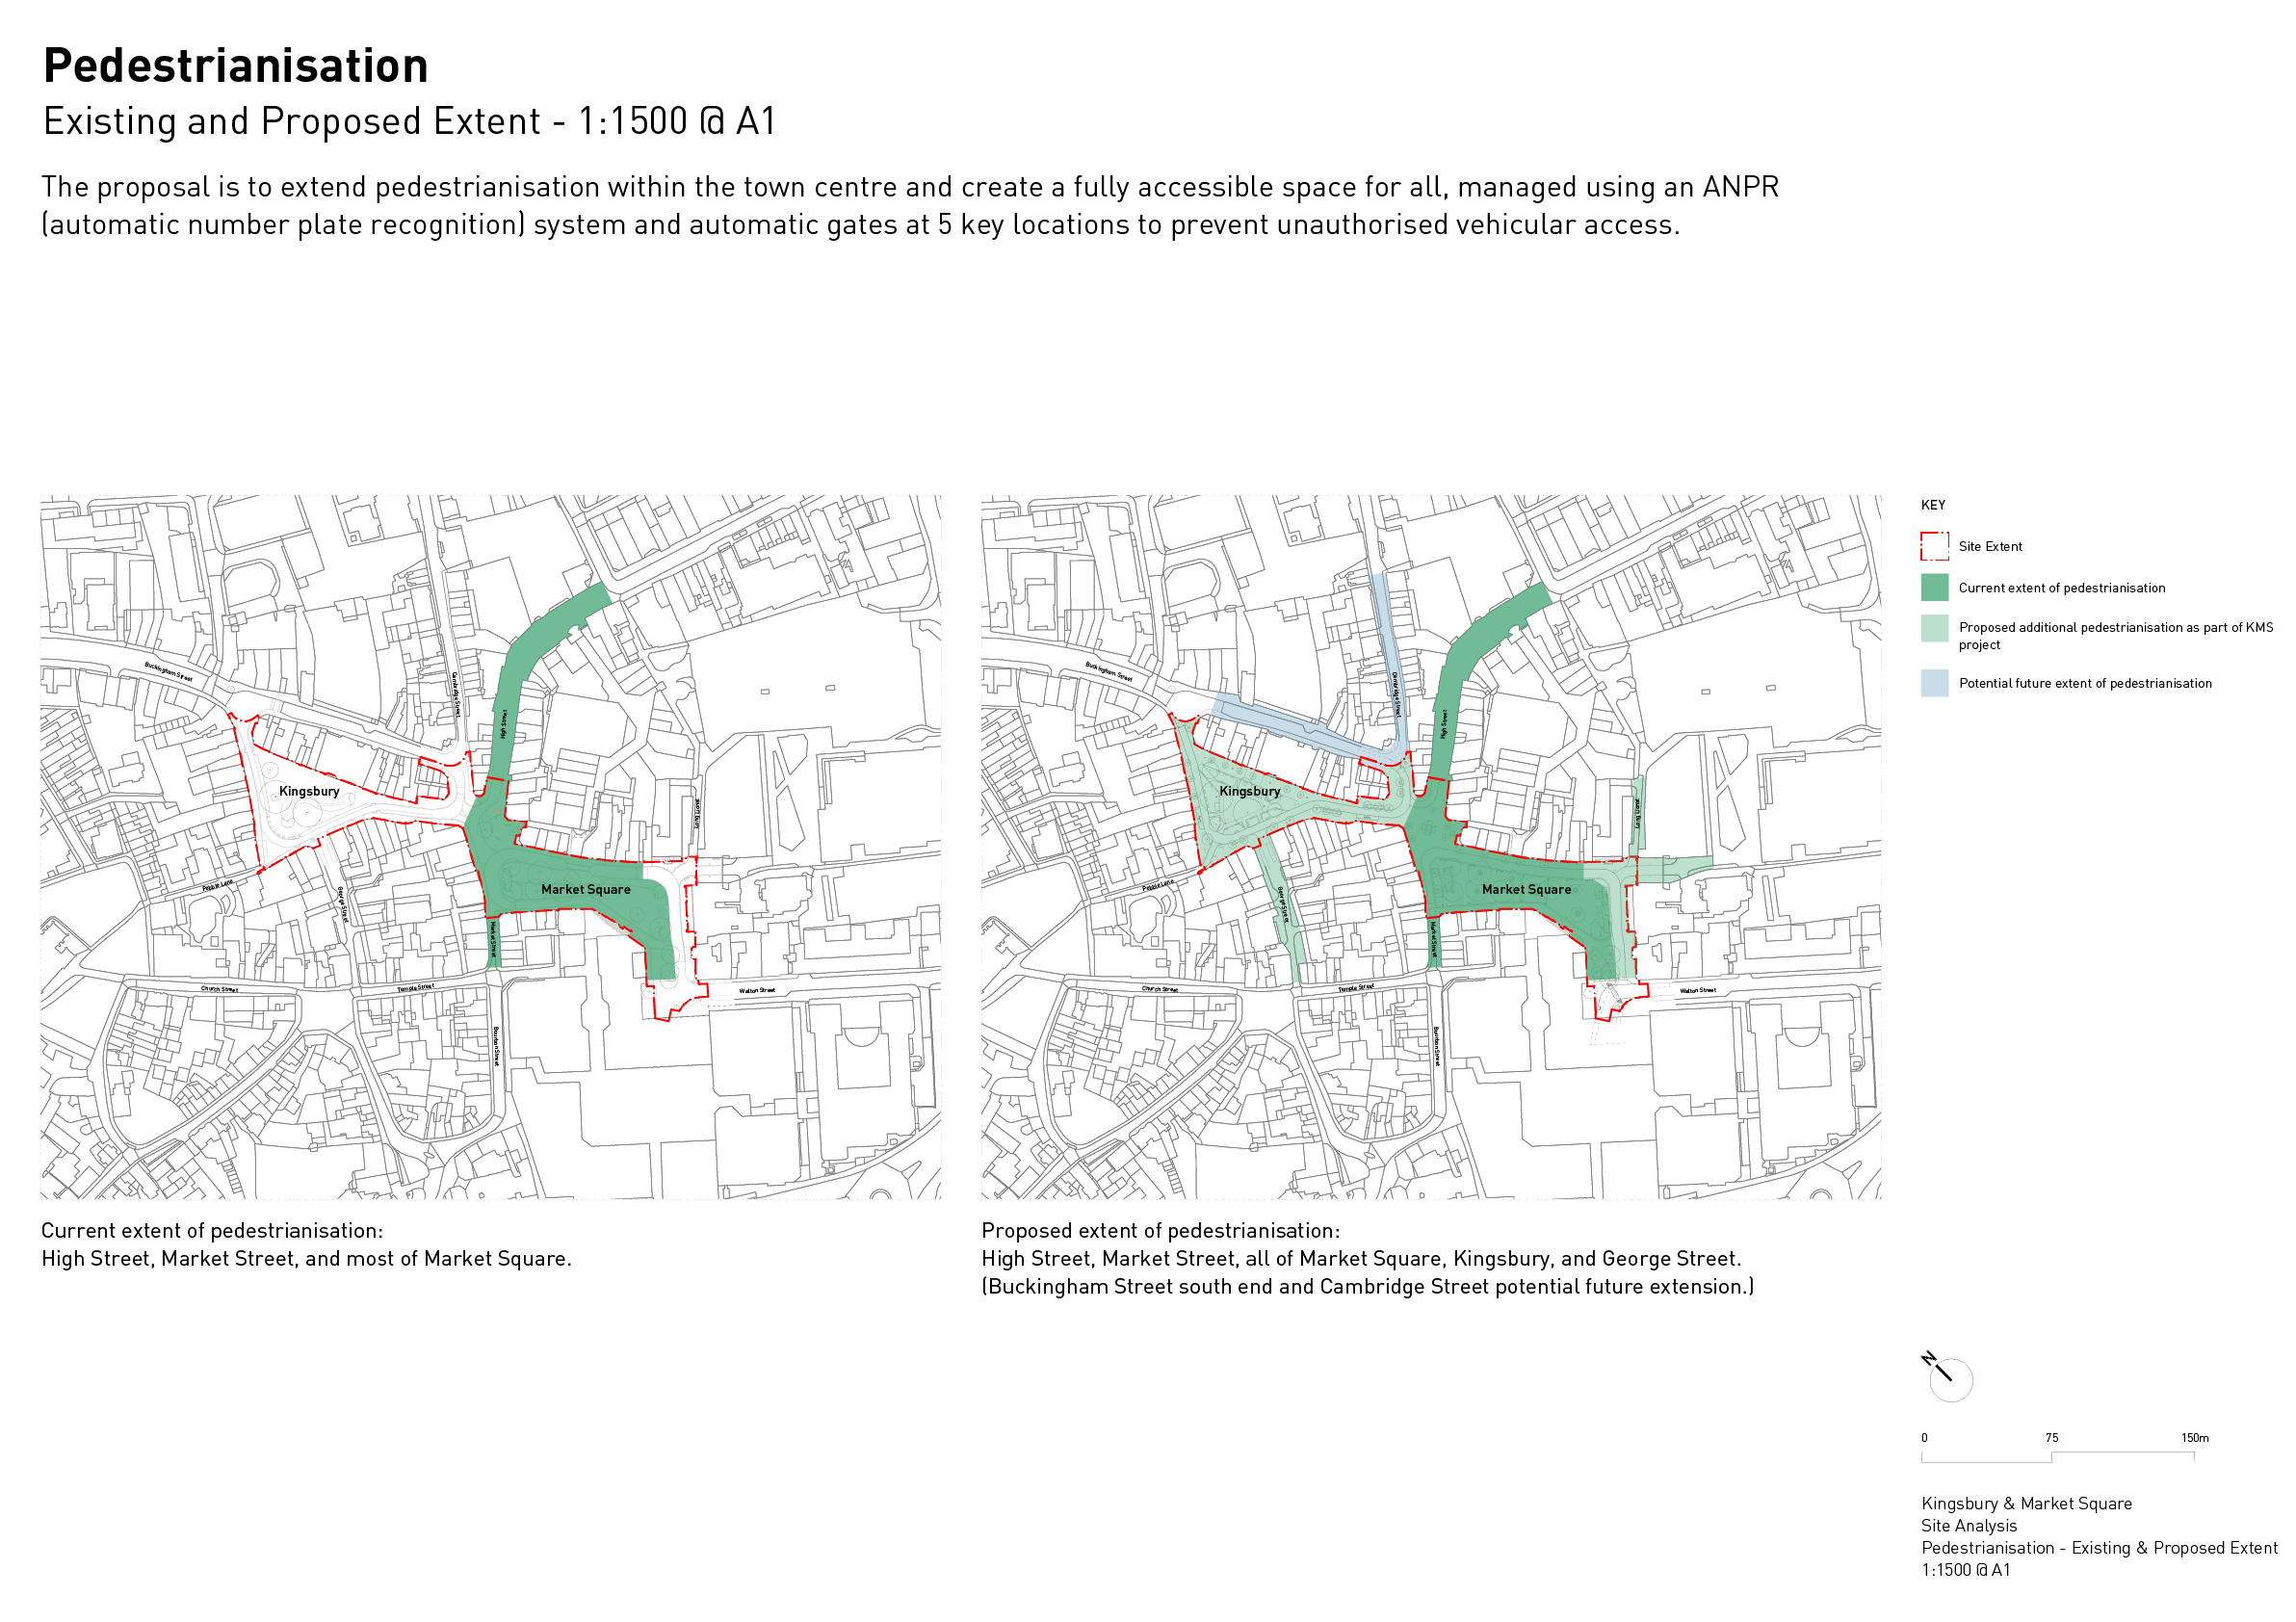 Plans showing the existing and proposed pedestrianisation extents